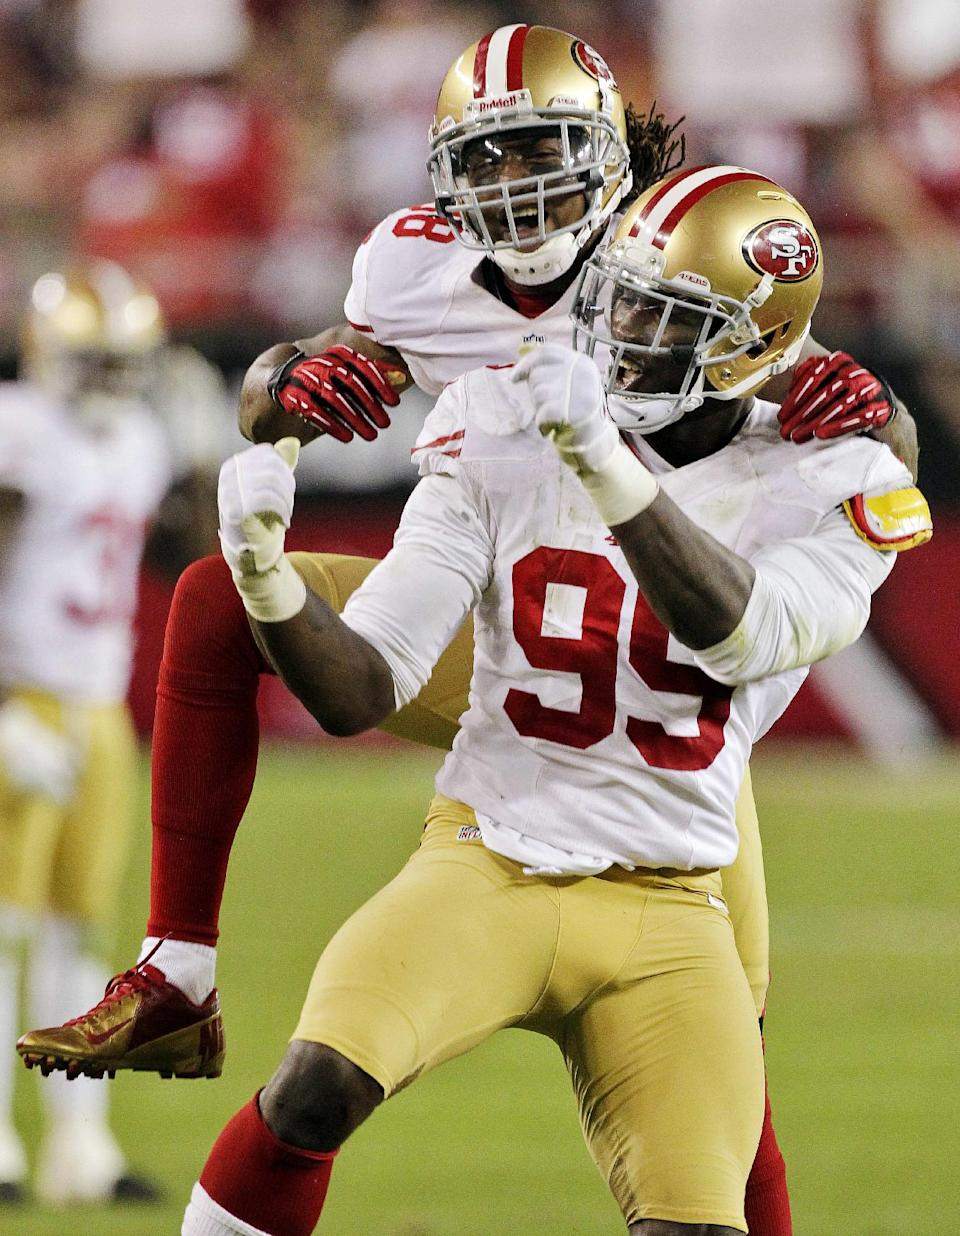 San Francisco 49ers outside linebacker Aldon Smith (99) celebrates his sack of Arizona Cardinals quarterback John Skelton with Parys Haralson during the second half of an NFL football game, Monday, Oct. 29, 2012, in Glendale, Ariz. (AP Photo/Matt York)